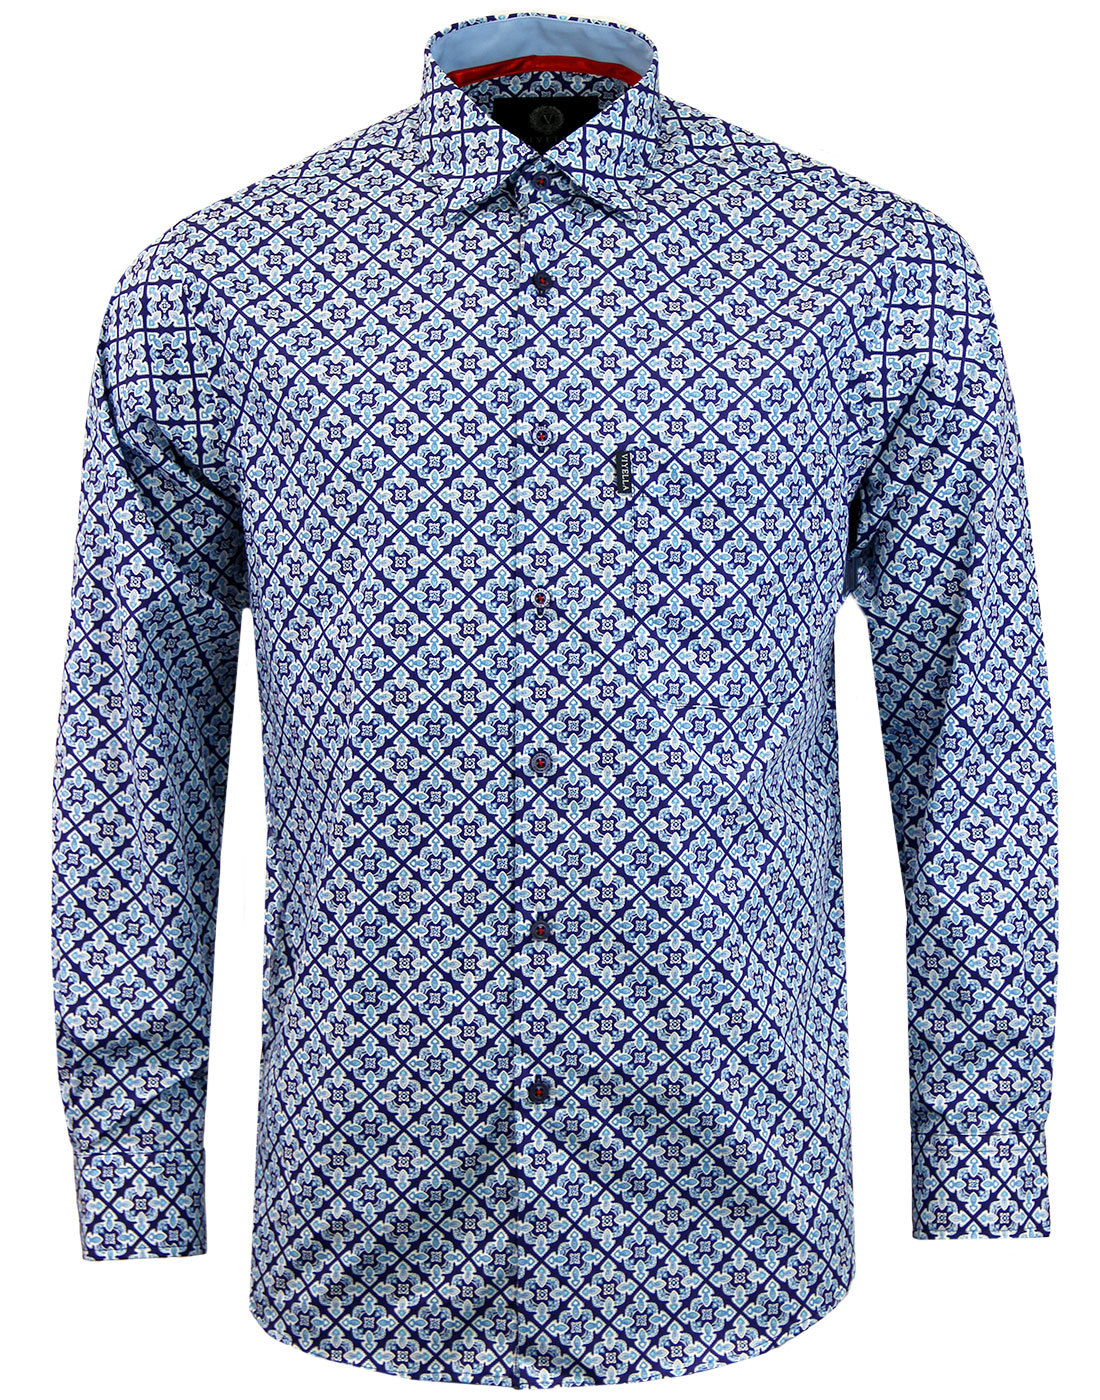 VIYELLA Men's 1960s Mod Diamond Paisley Tile Shirt